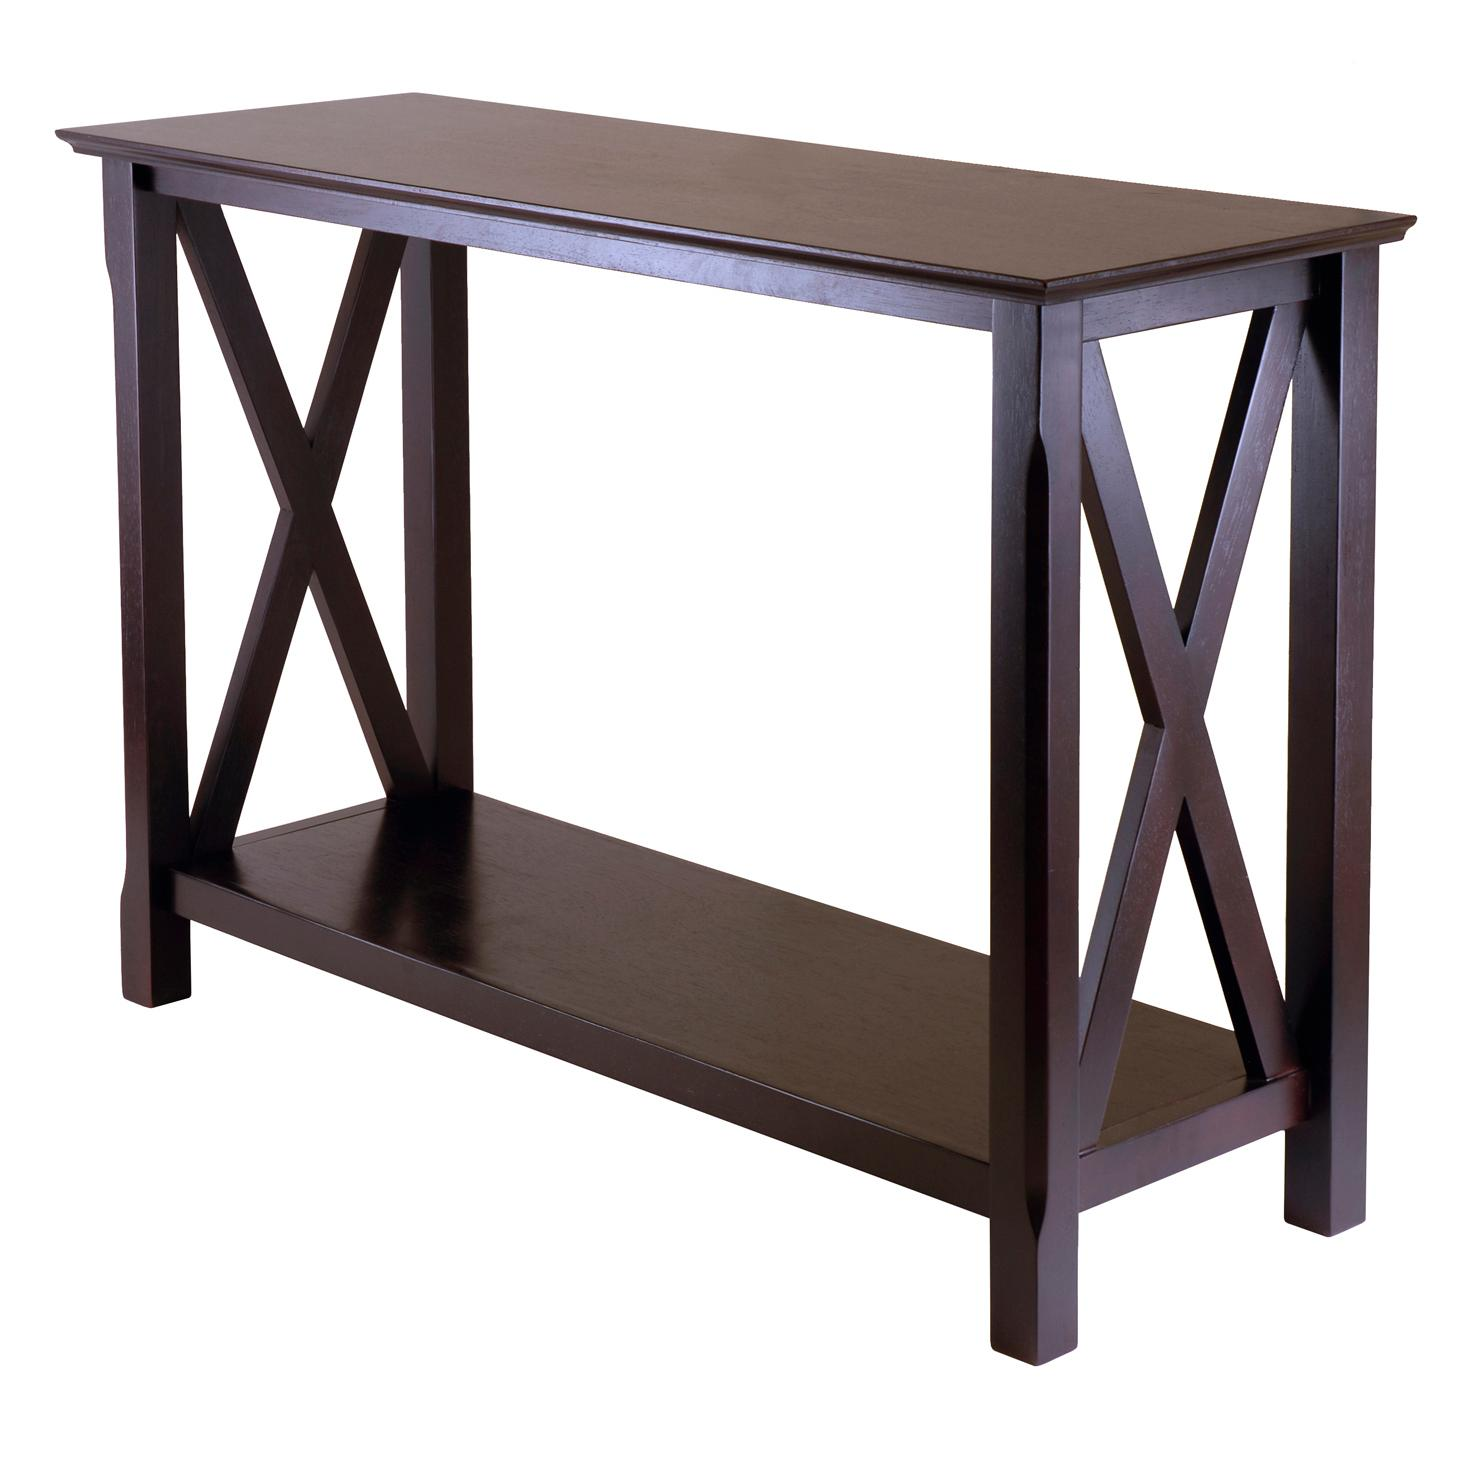 Amazoncom Winsome Wood Xola Console Table Kitchen Dining